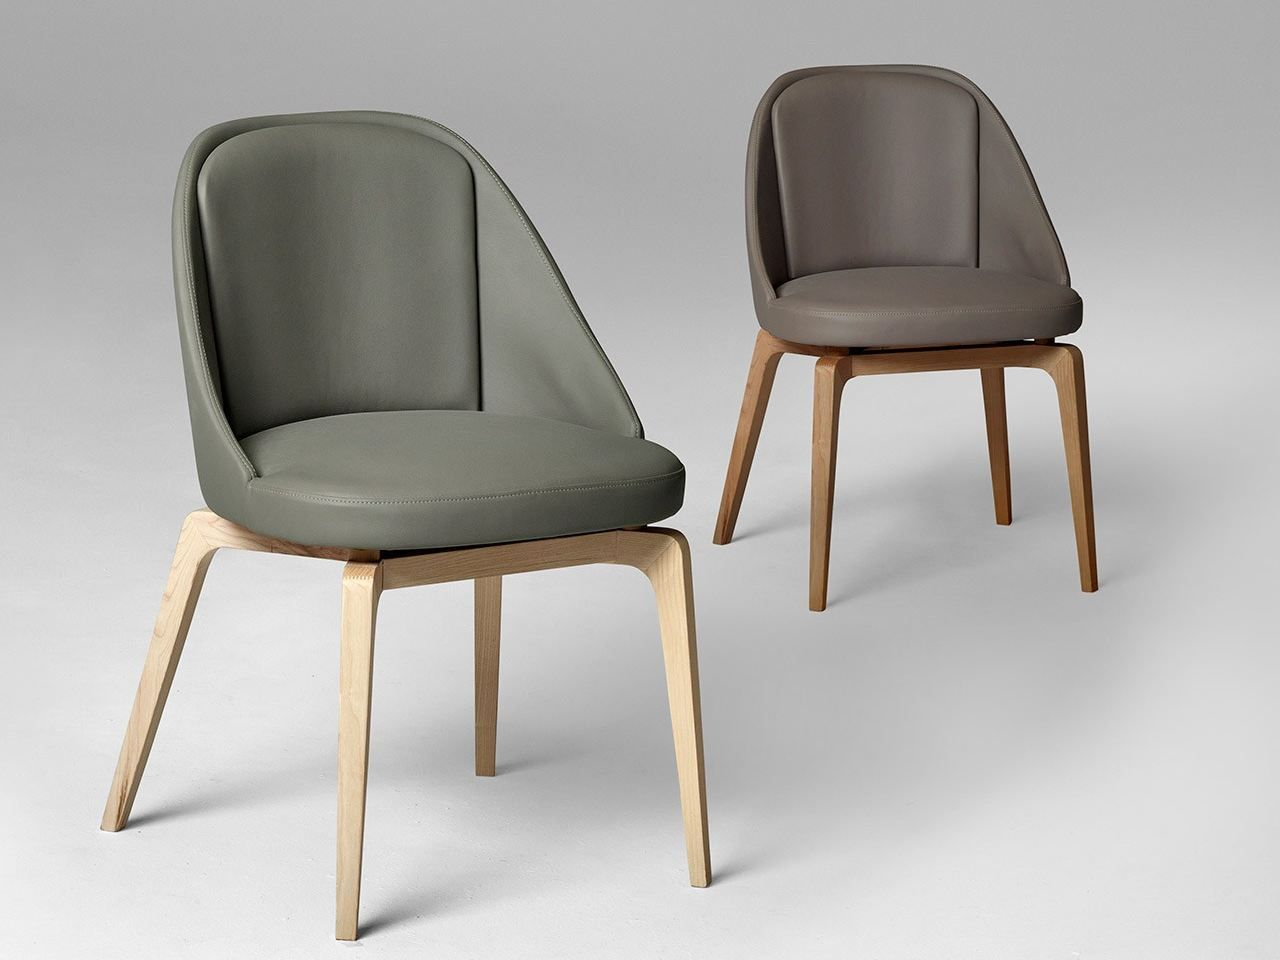 Alivar Sedie ~ Leather chair oyster by alivar design andrea lucatello furniture